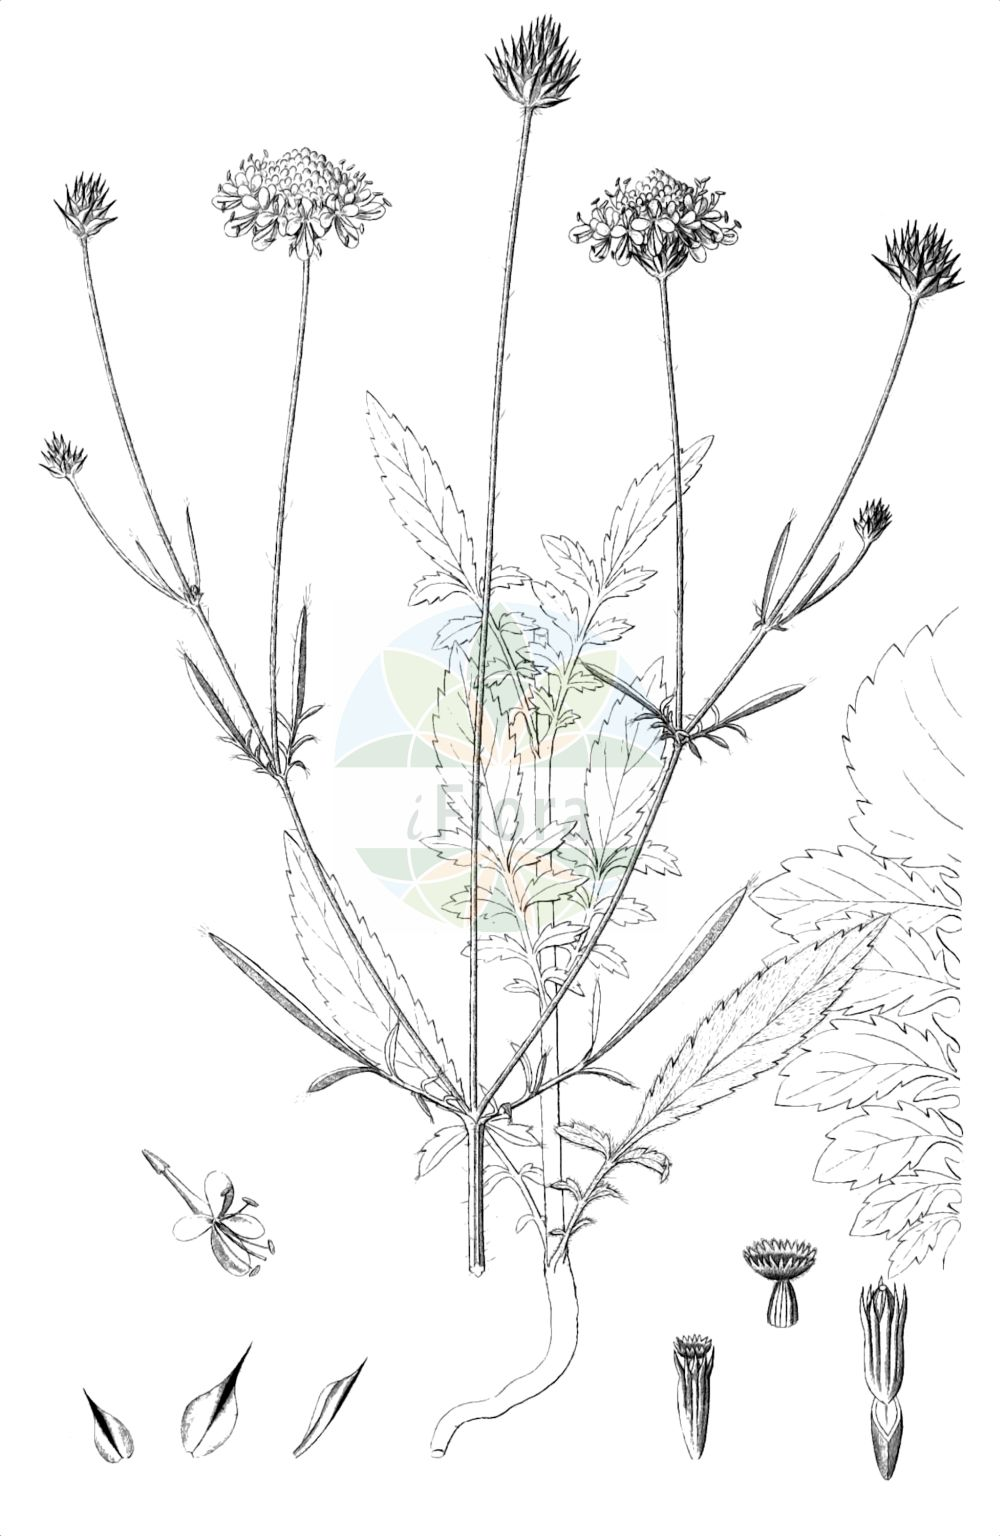 Historische Abbildung von Cephalaria transsylvanica. Das Bild zeigt Blatt, Bluete, Frucht und Same. ---- Historical Drawing of Cephalaria transsylvanica.The image is showing leaf, flower, fruit and seed.(Cephalaria transsylvanica,Cephalaria allionii,Cephalaria transsylvanica,Cephalaria,Caprifoliaceae,Geissblattgewaechse,Honeysuckle family,Blatt,Bluete,Frucht,Same,leaf,flower,fruit,seed,Reichenbach (1823-1832))